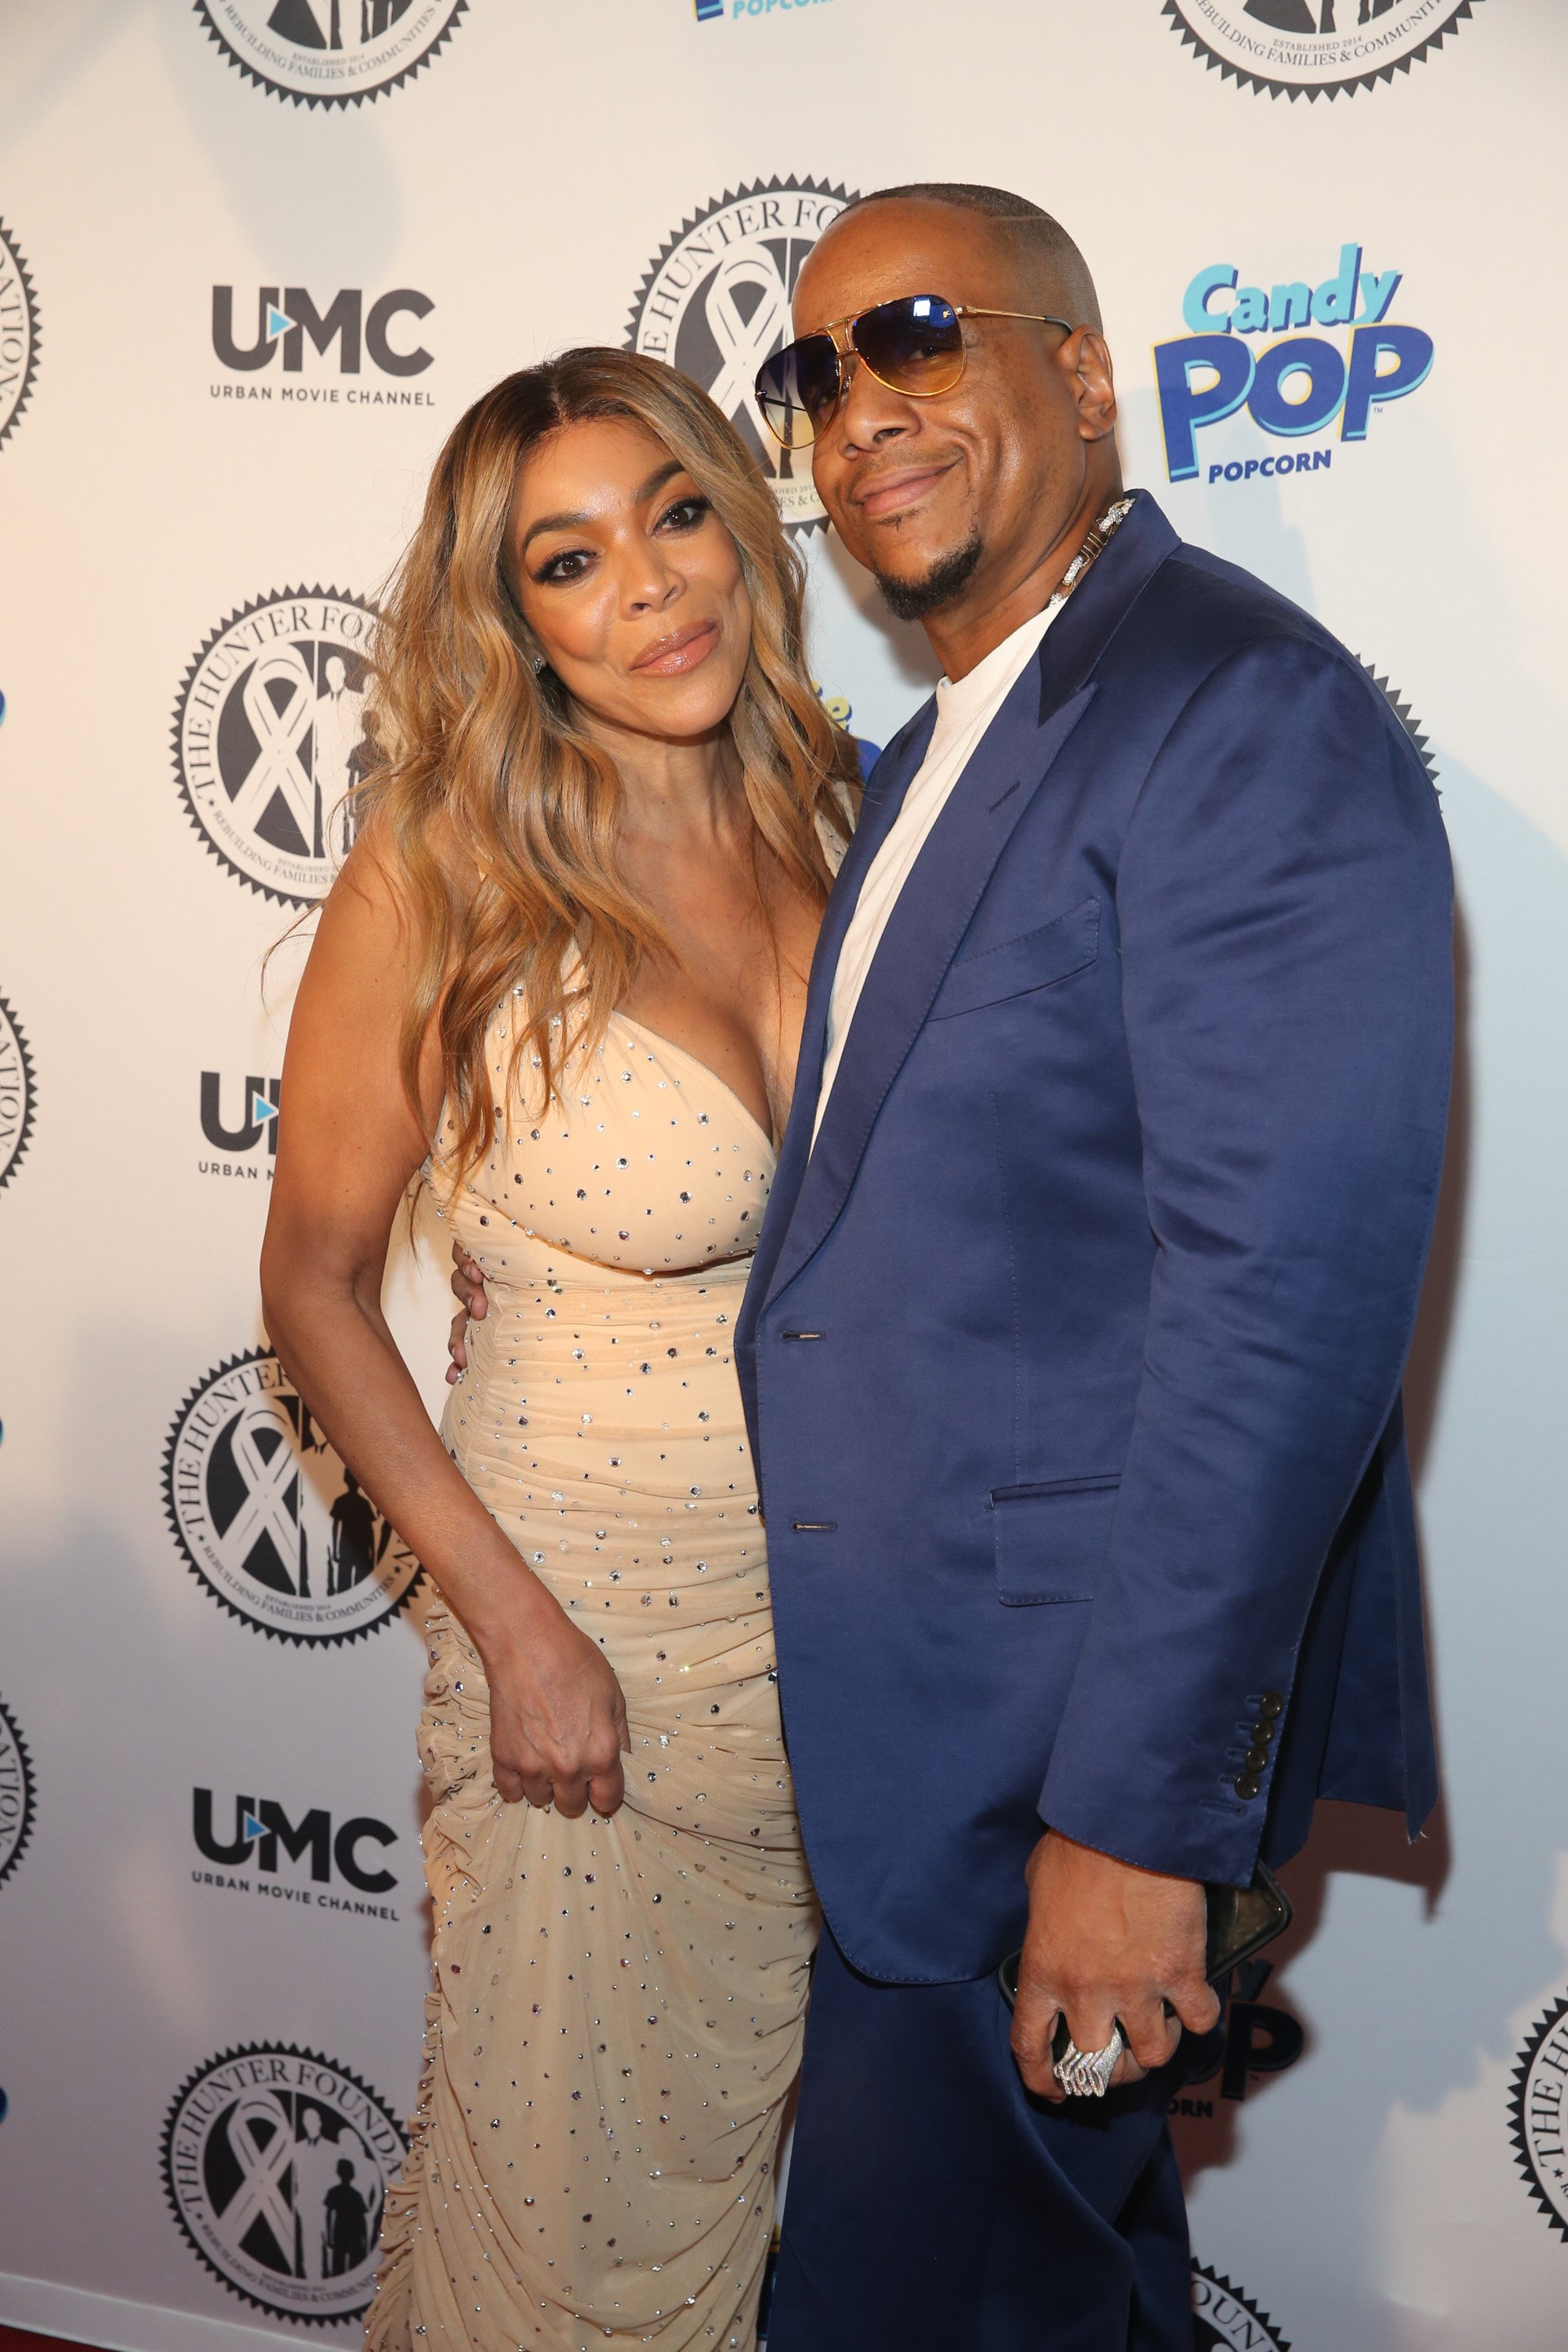 Wendy Williams and Kevin Hunter attend The Hunter Foundation gala at Hammerstein Ballroom.   Source: GettyImages